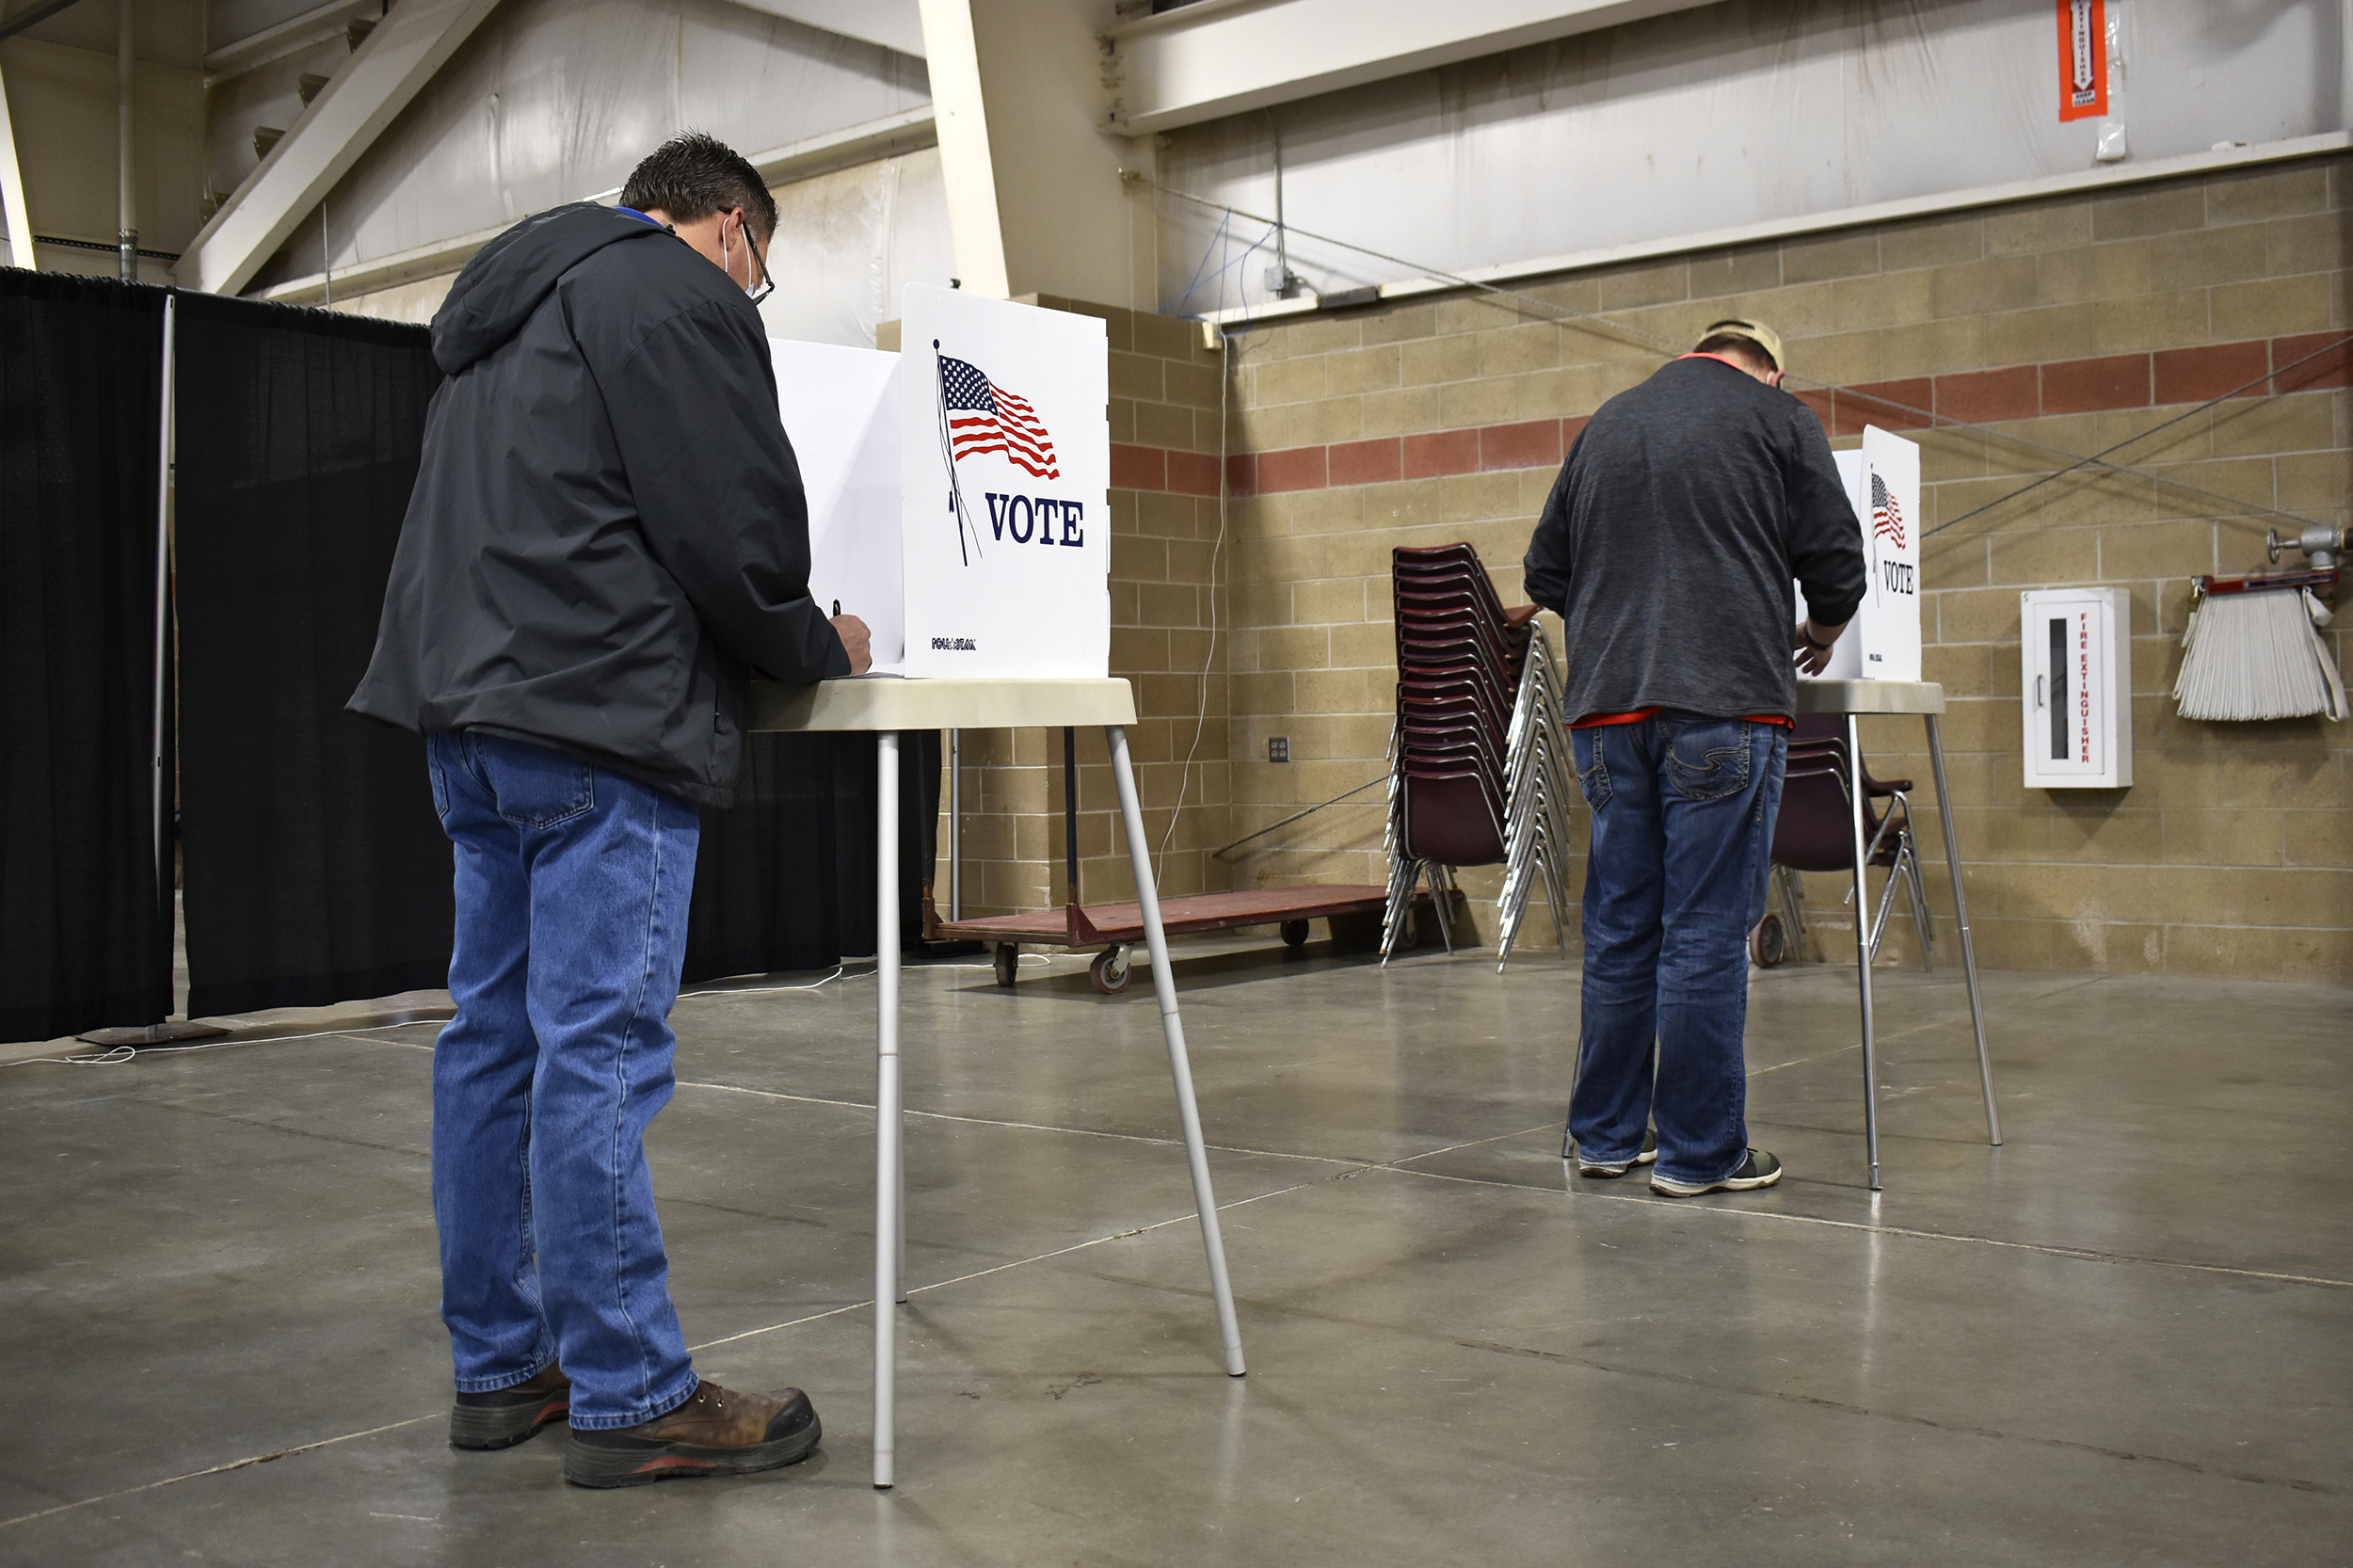 New polls suggest broad support for Democrats' voting rights bills